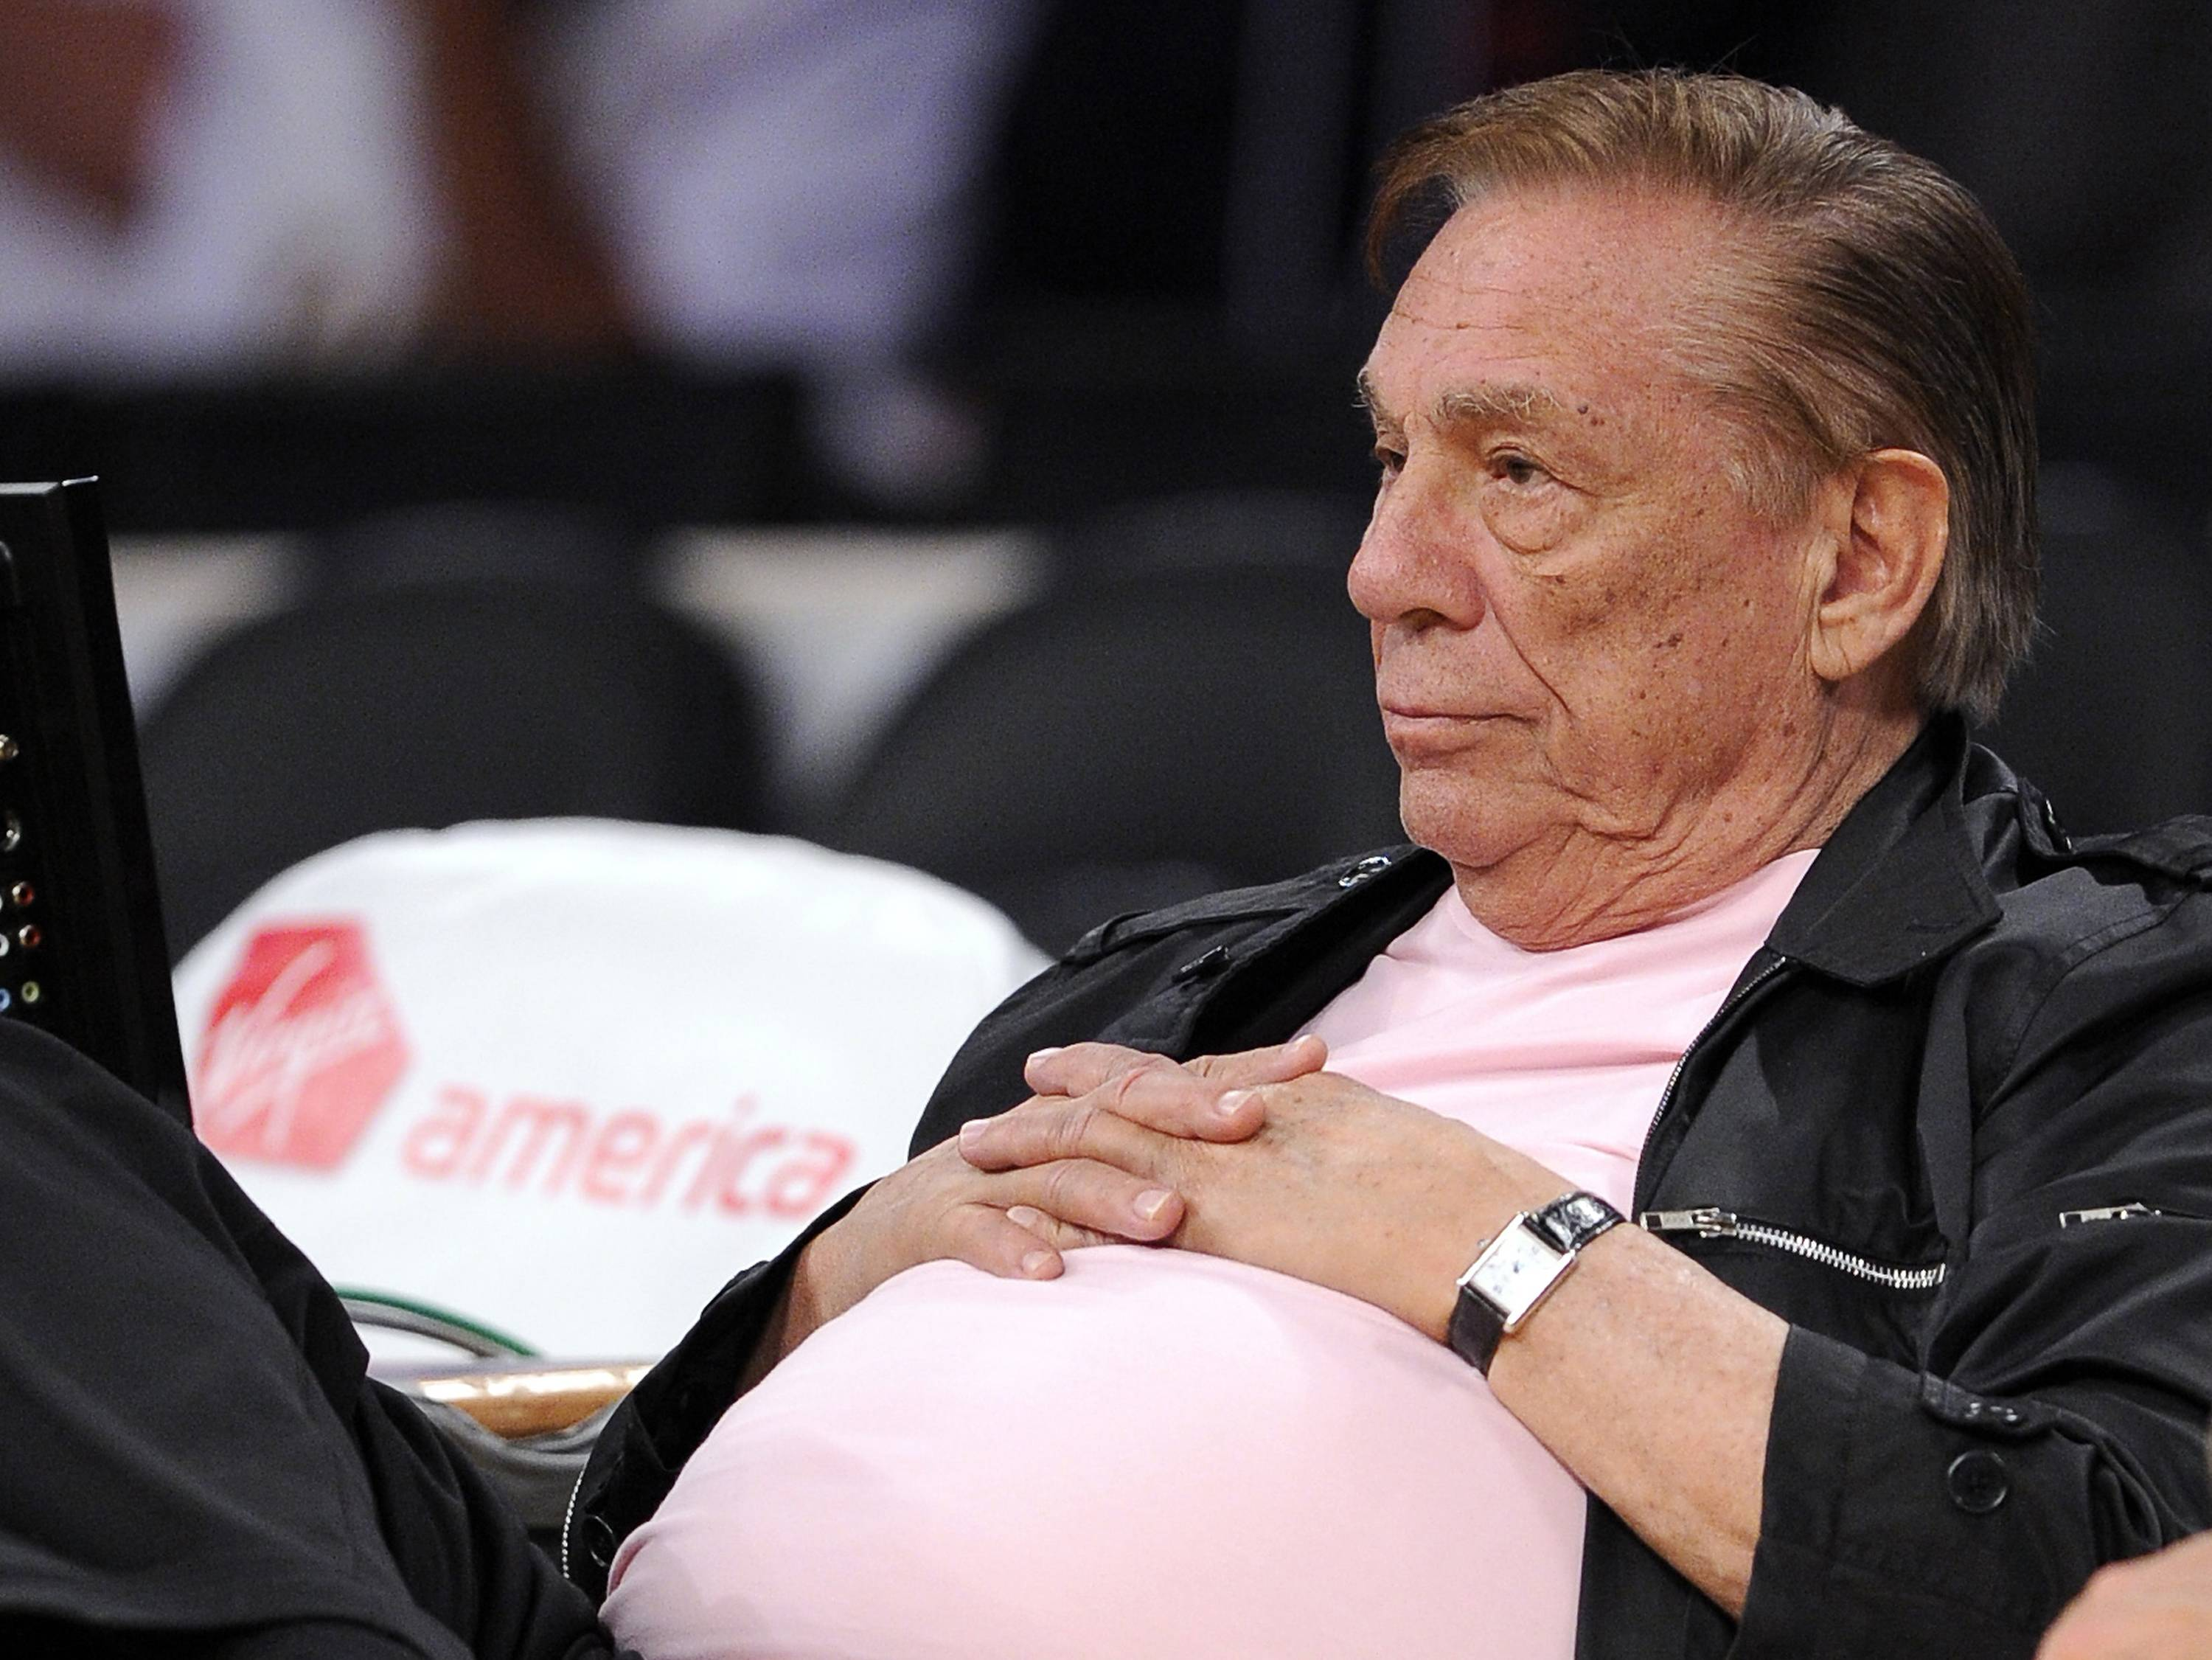 In this Oct. 17, 2010 file photo, Los Angeles Clippers team owner Donald Sterling watches his team play in Los Angeles. Sterling has pulled his support from a deal to seel the team he has owned for 33 years to former Microsoft CEO Steve Ballmer for $2 billion. Now his wife Shelly wants a court decide whether she's the sole trustee and can go ahead with sale without her husband's support.